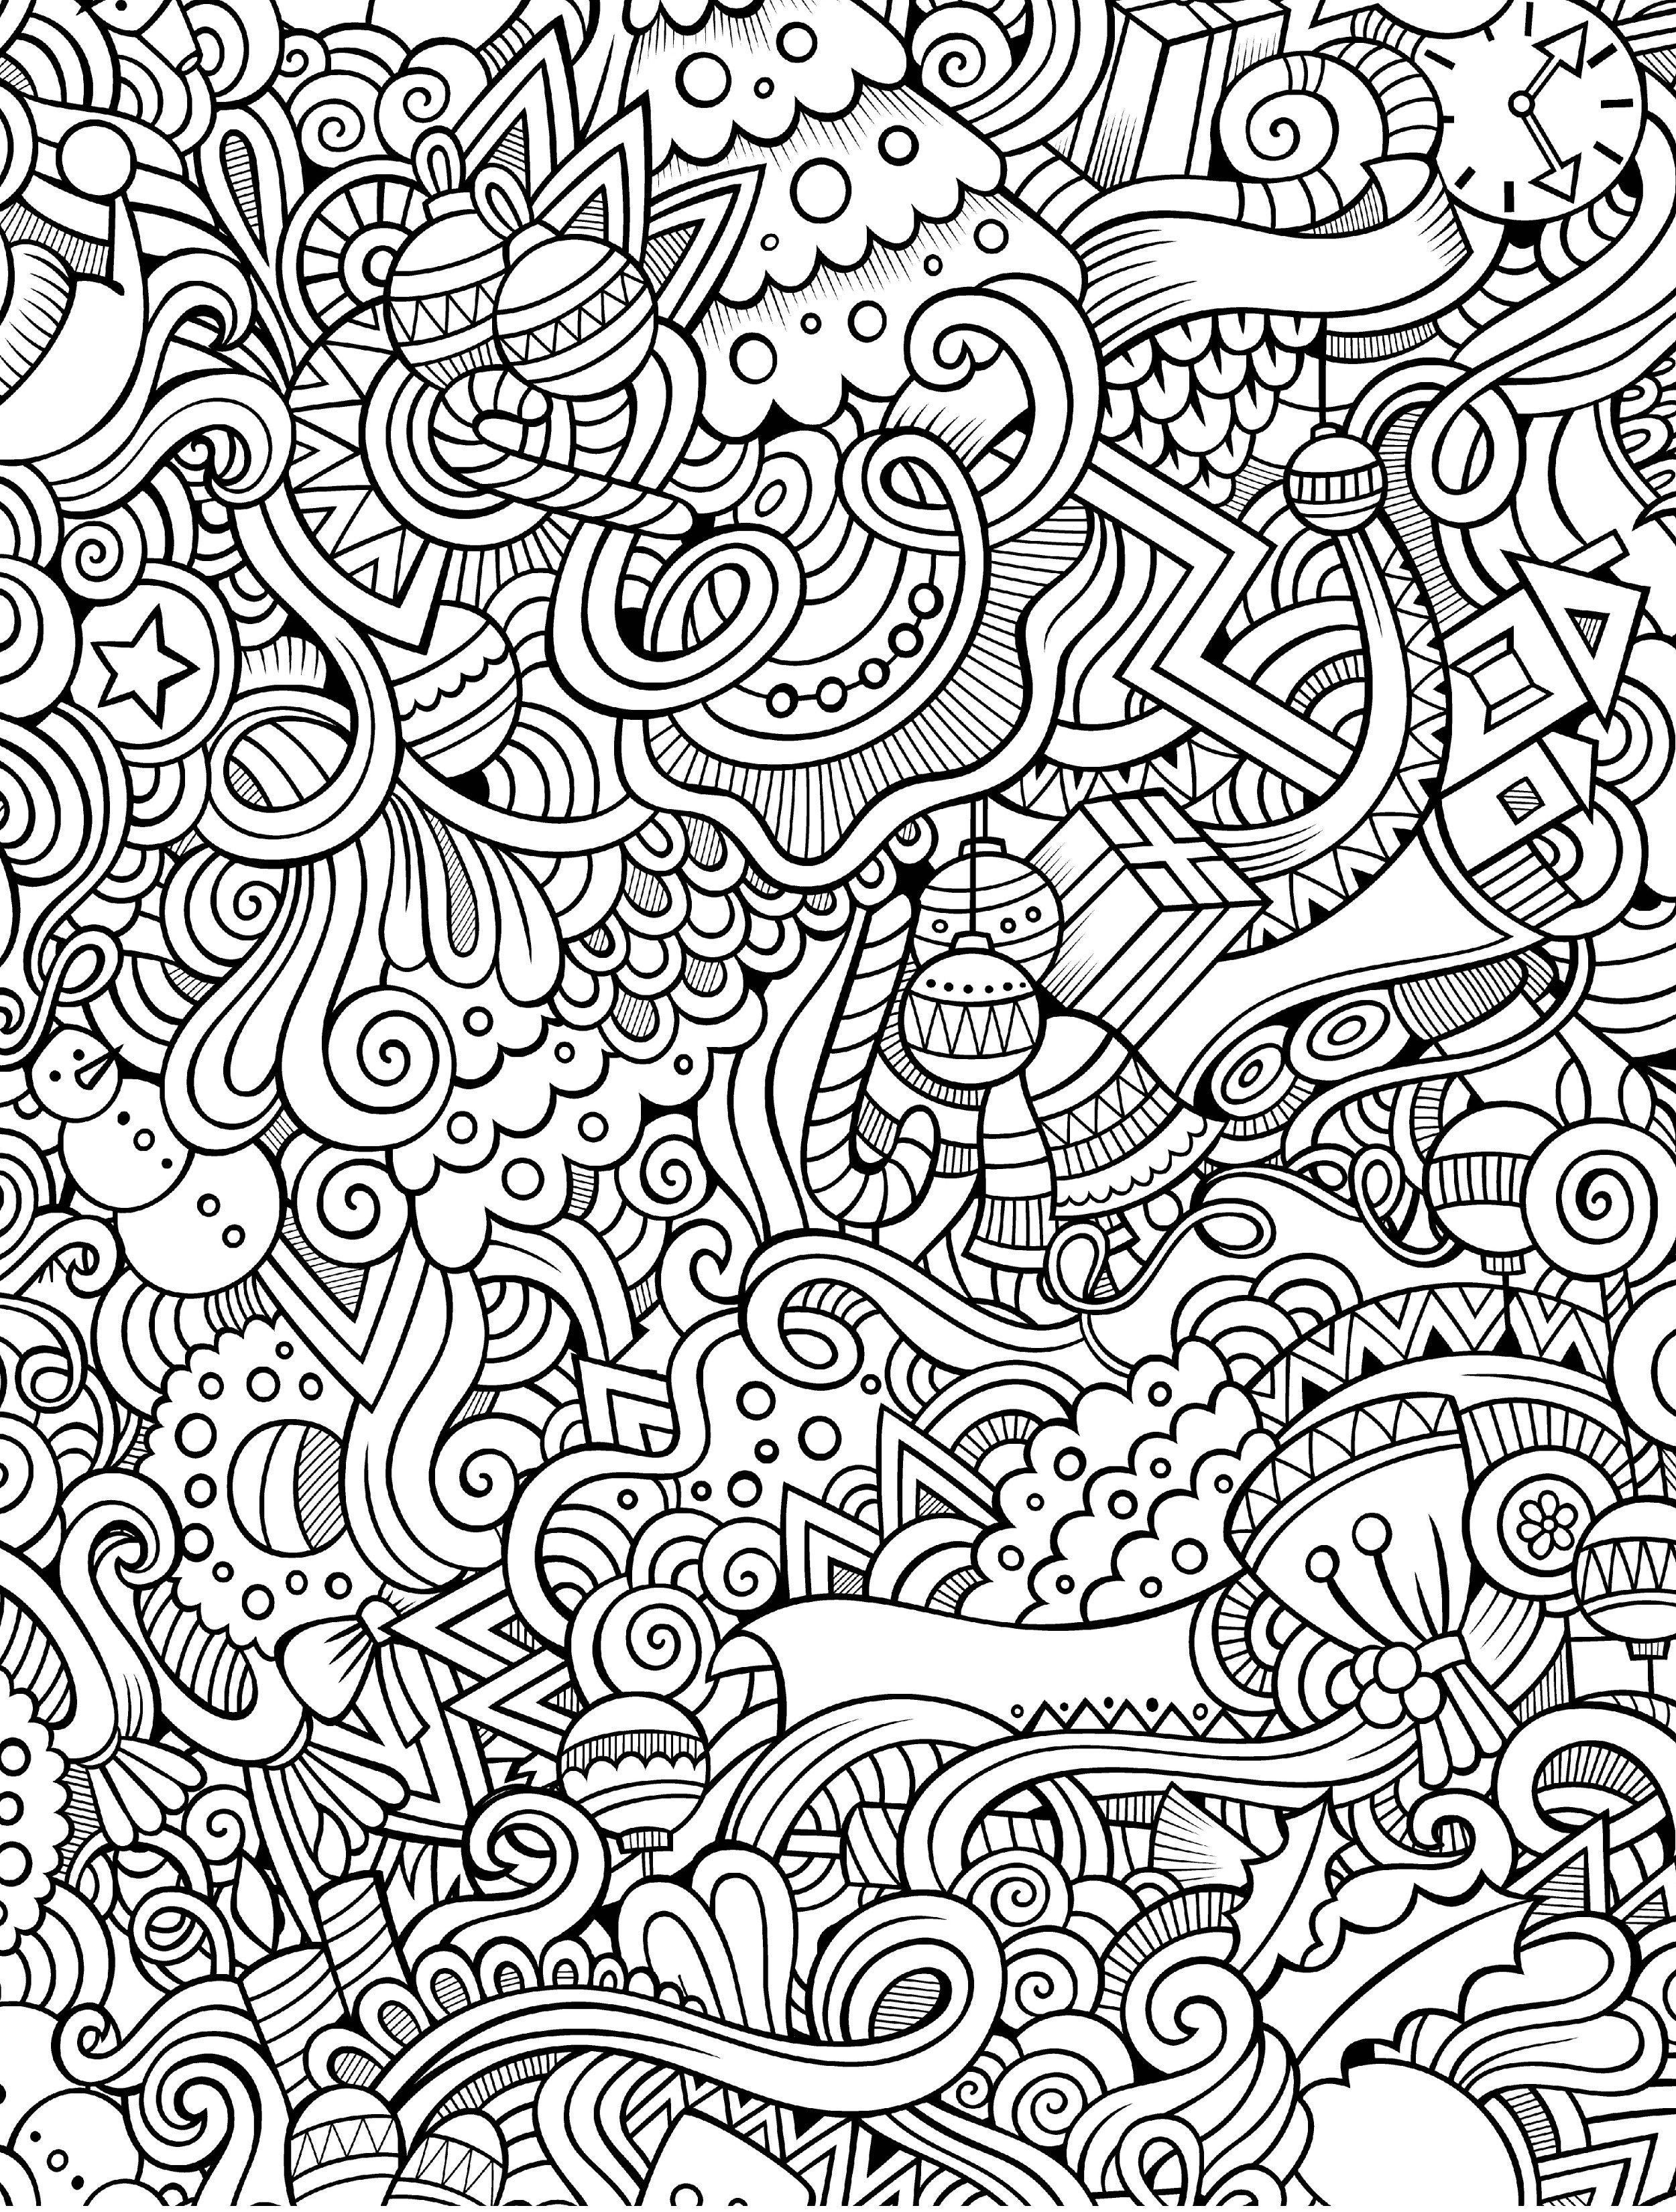 Free Printable Coloring Pages For Adults Advanced Dragons Inspirational Colori In 2020 Printable Christmas Coloring Pages Heart Coloring Pages Christmas Coloring Pages